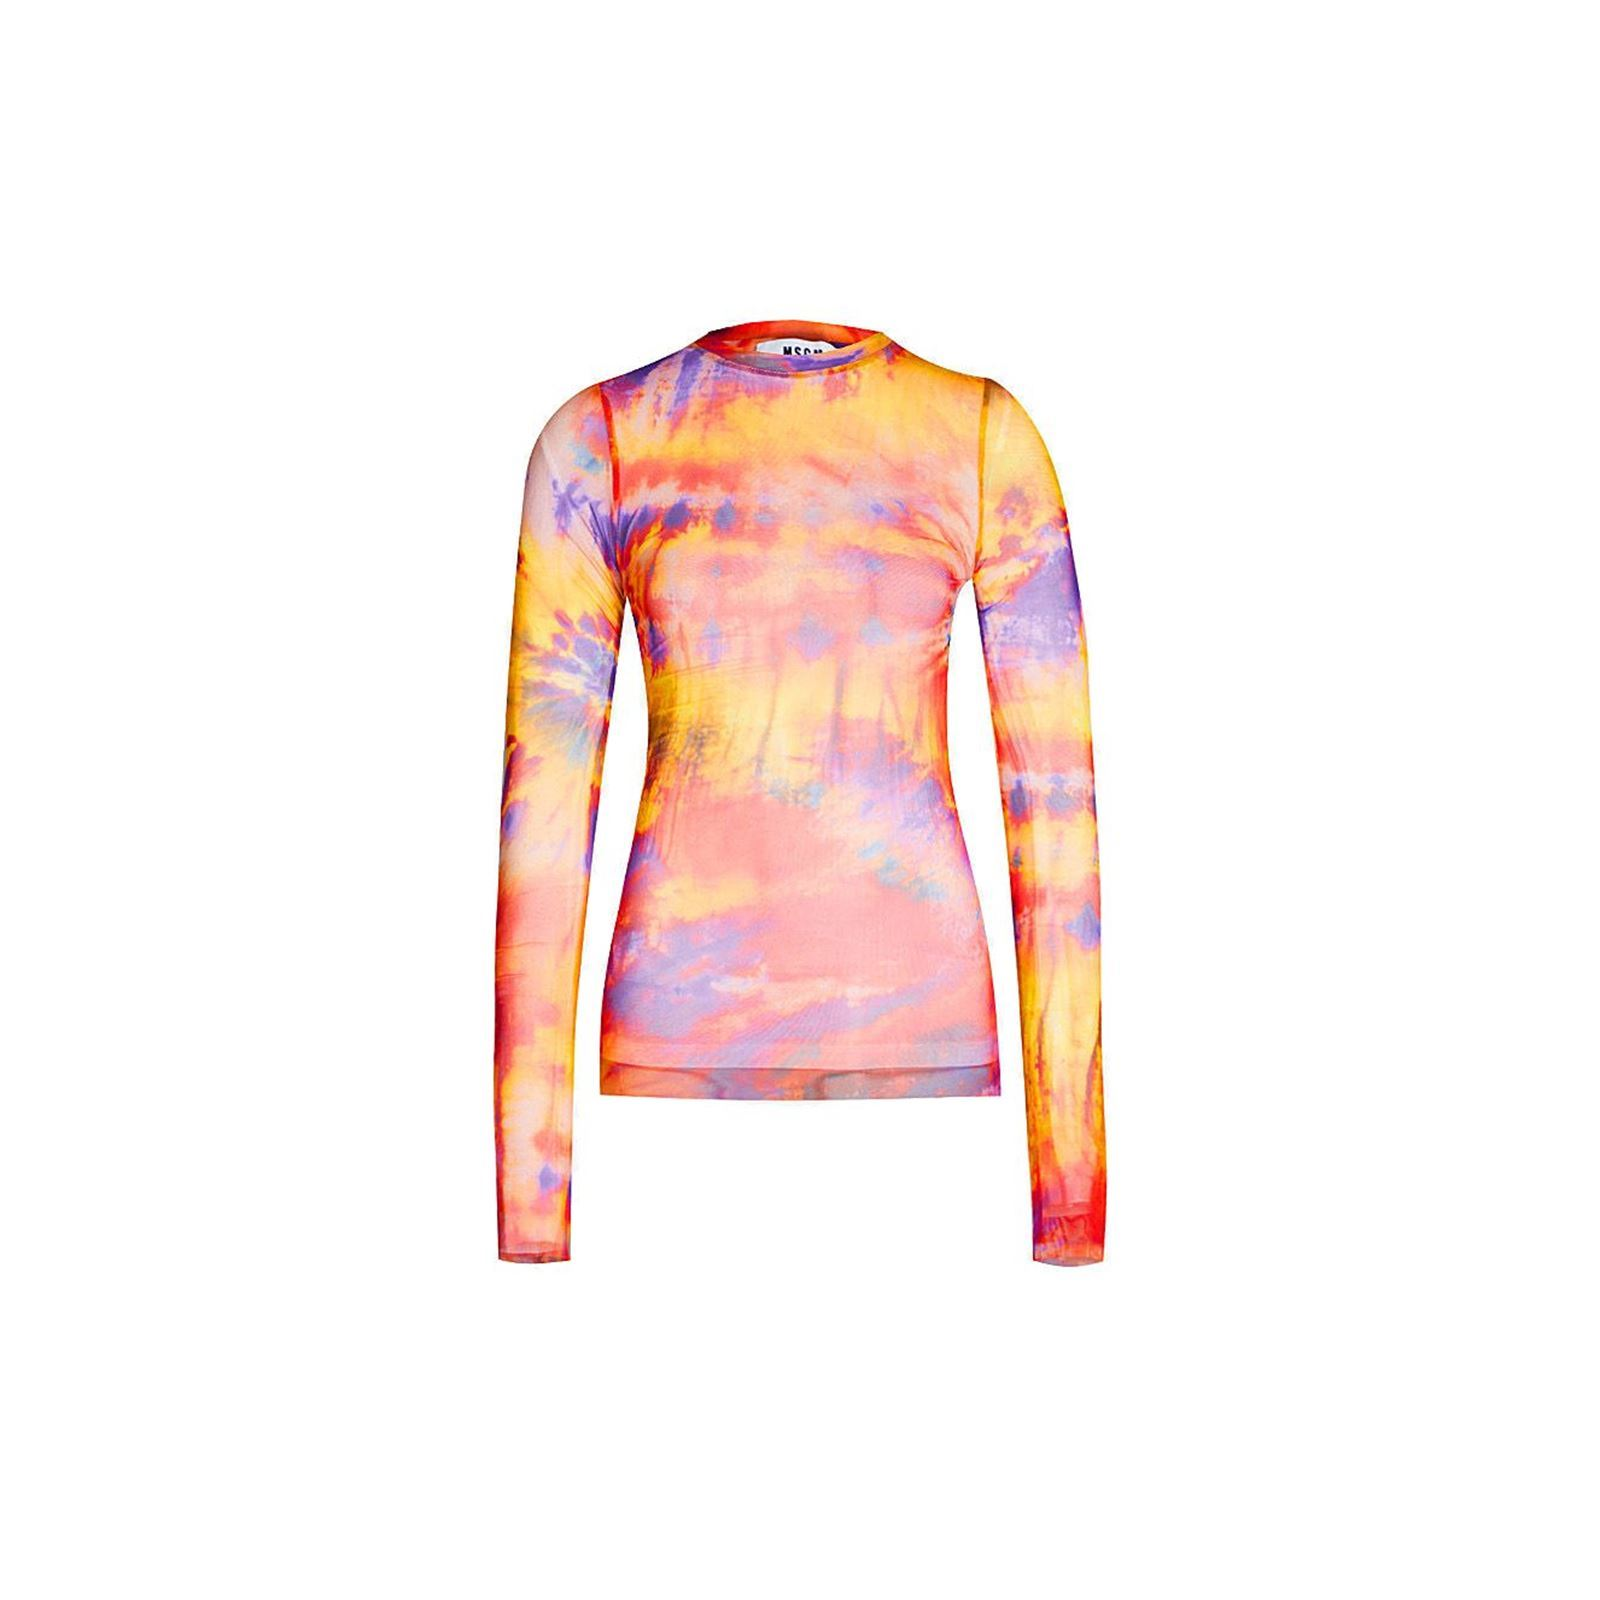 Manches V Msgm Femme T CourtesMulticolore shirt TFuK1cJ53l